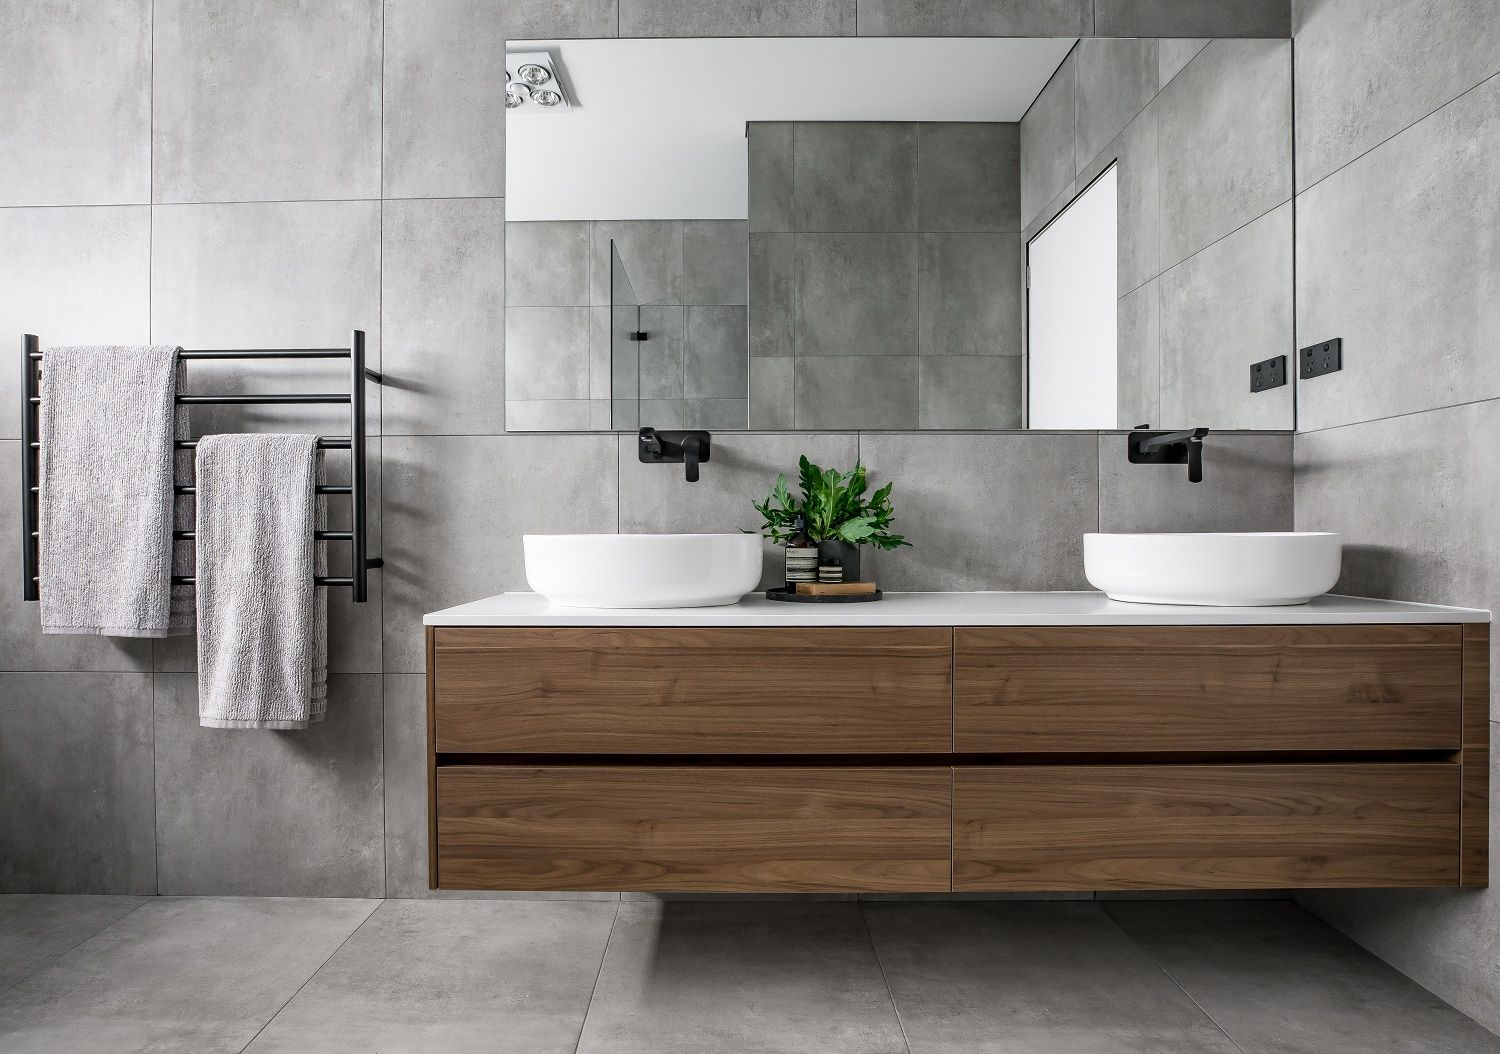 Vicello Kitchens Smartstone Bathroom Vanity Top In Nieve White Discover The Beauty Of Quartz At Smartstone Com Au Sma In 2020 With Images Grey Bathroom Tiles Bathroom Interior